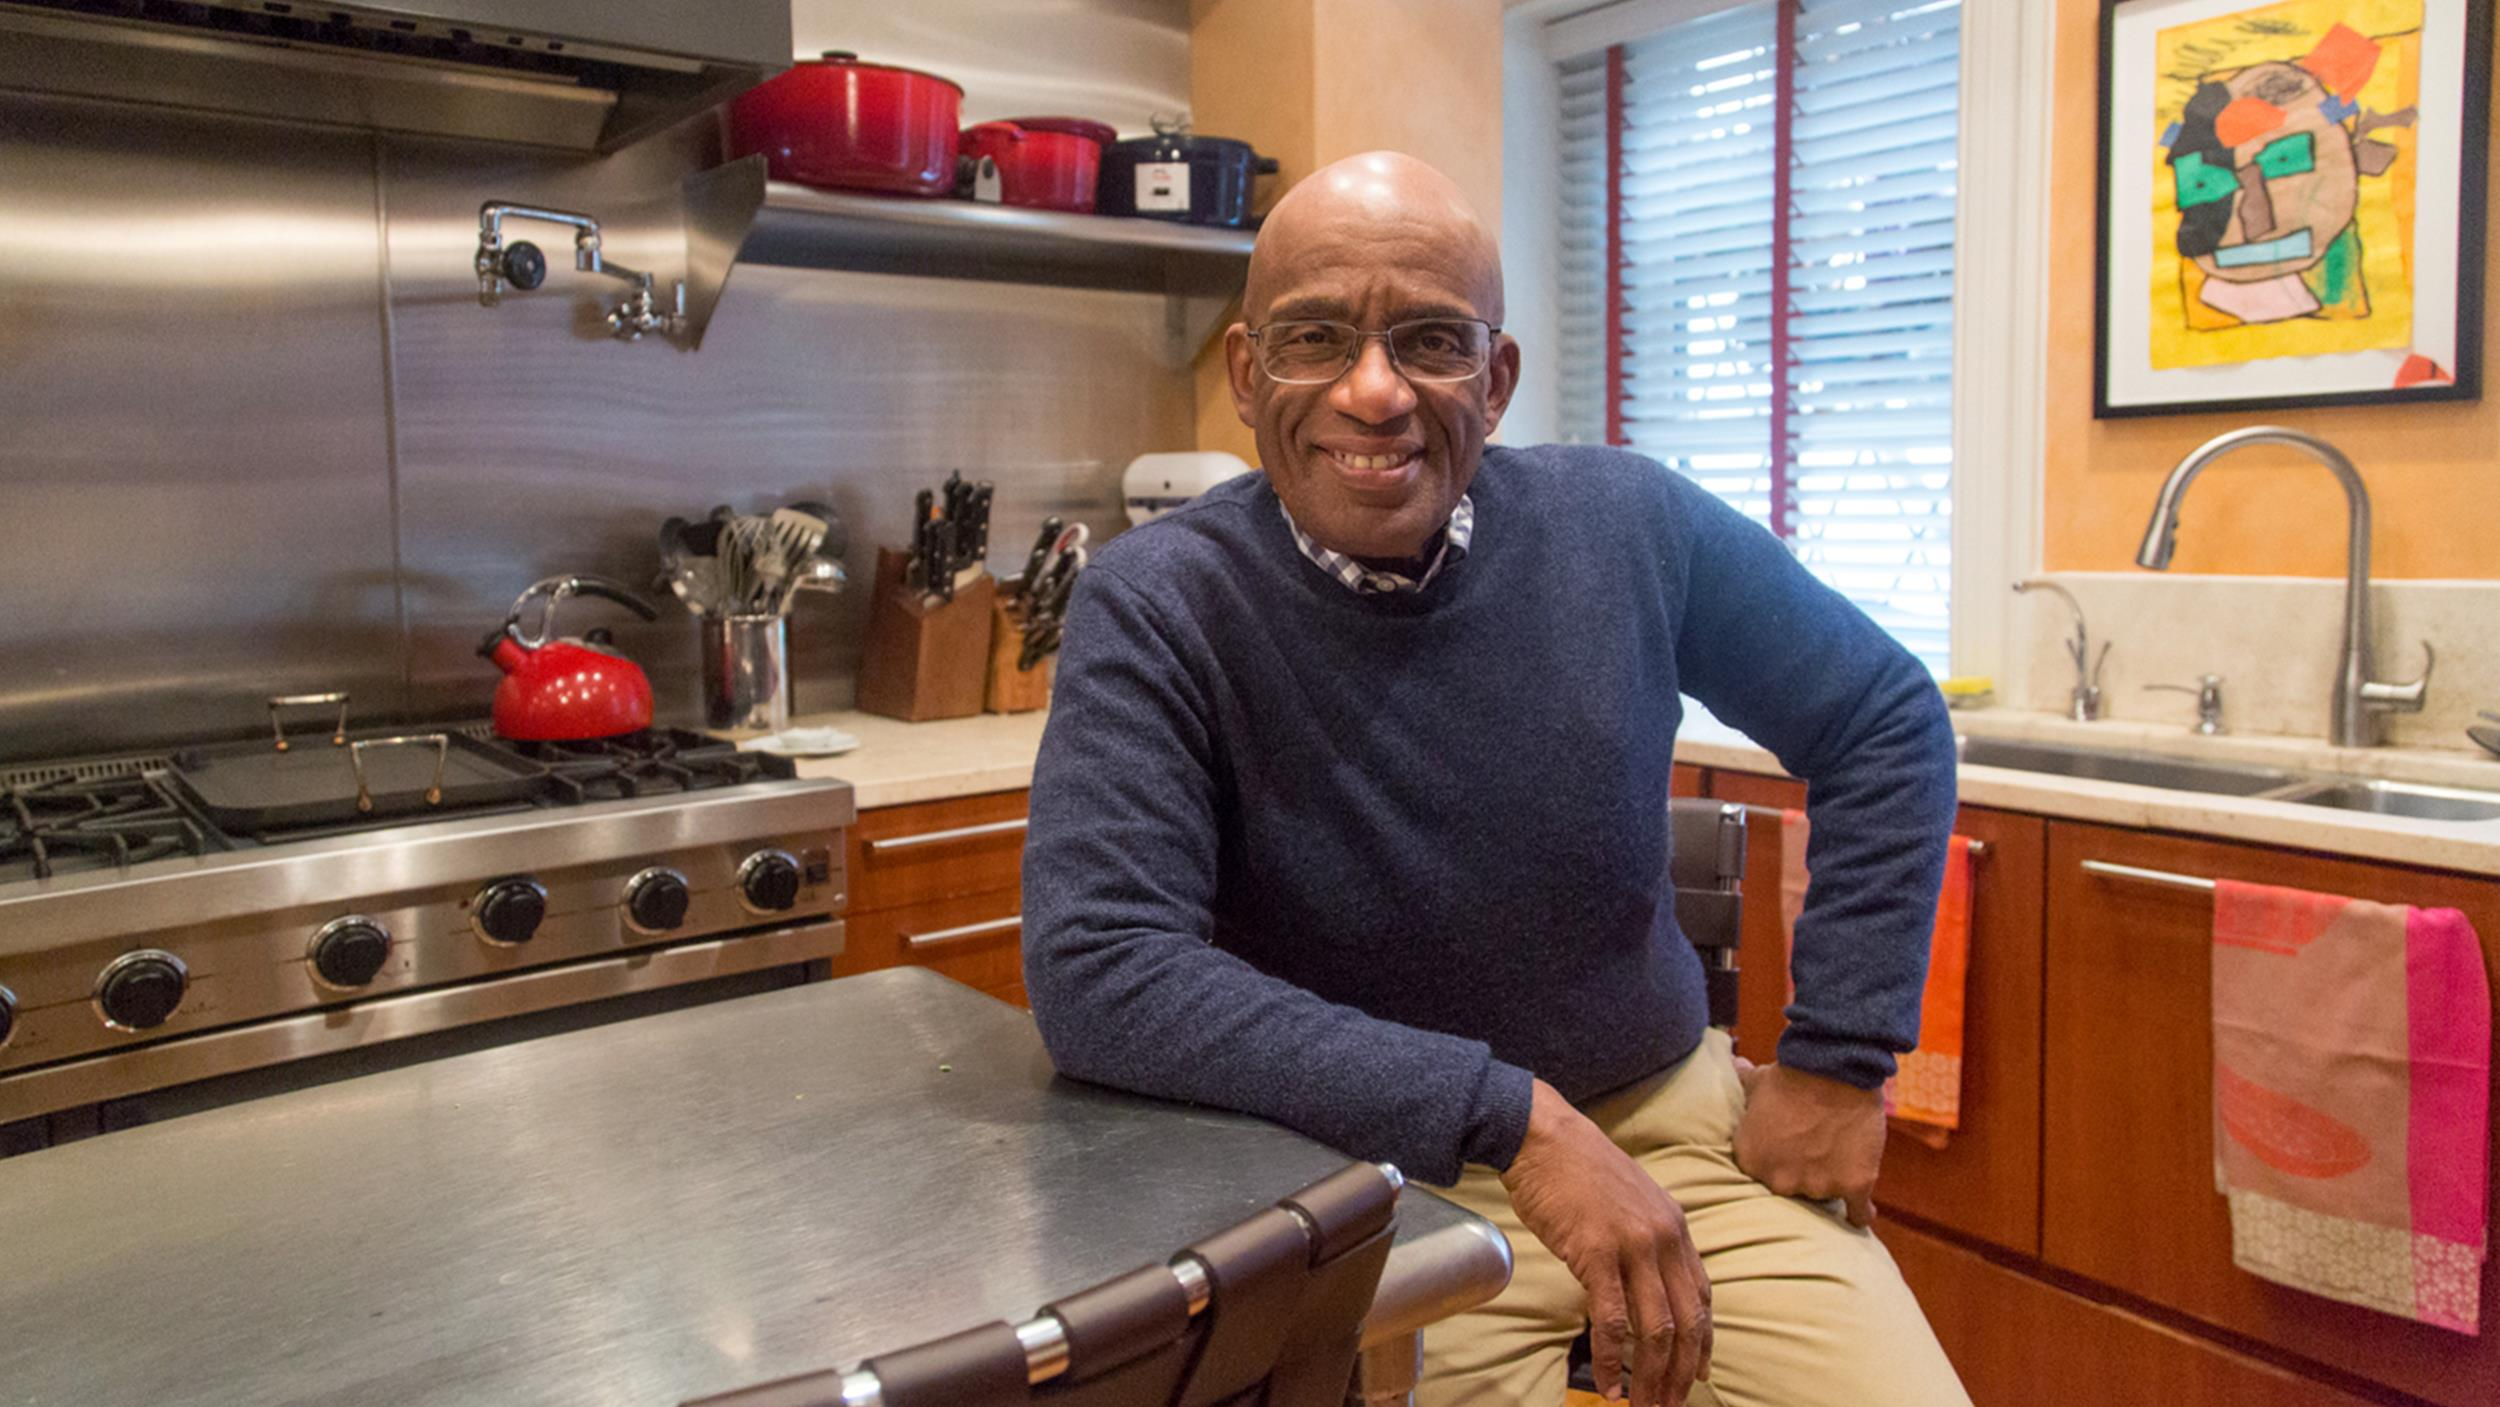 At Home With Today Al Roker Welcomes You Inside His